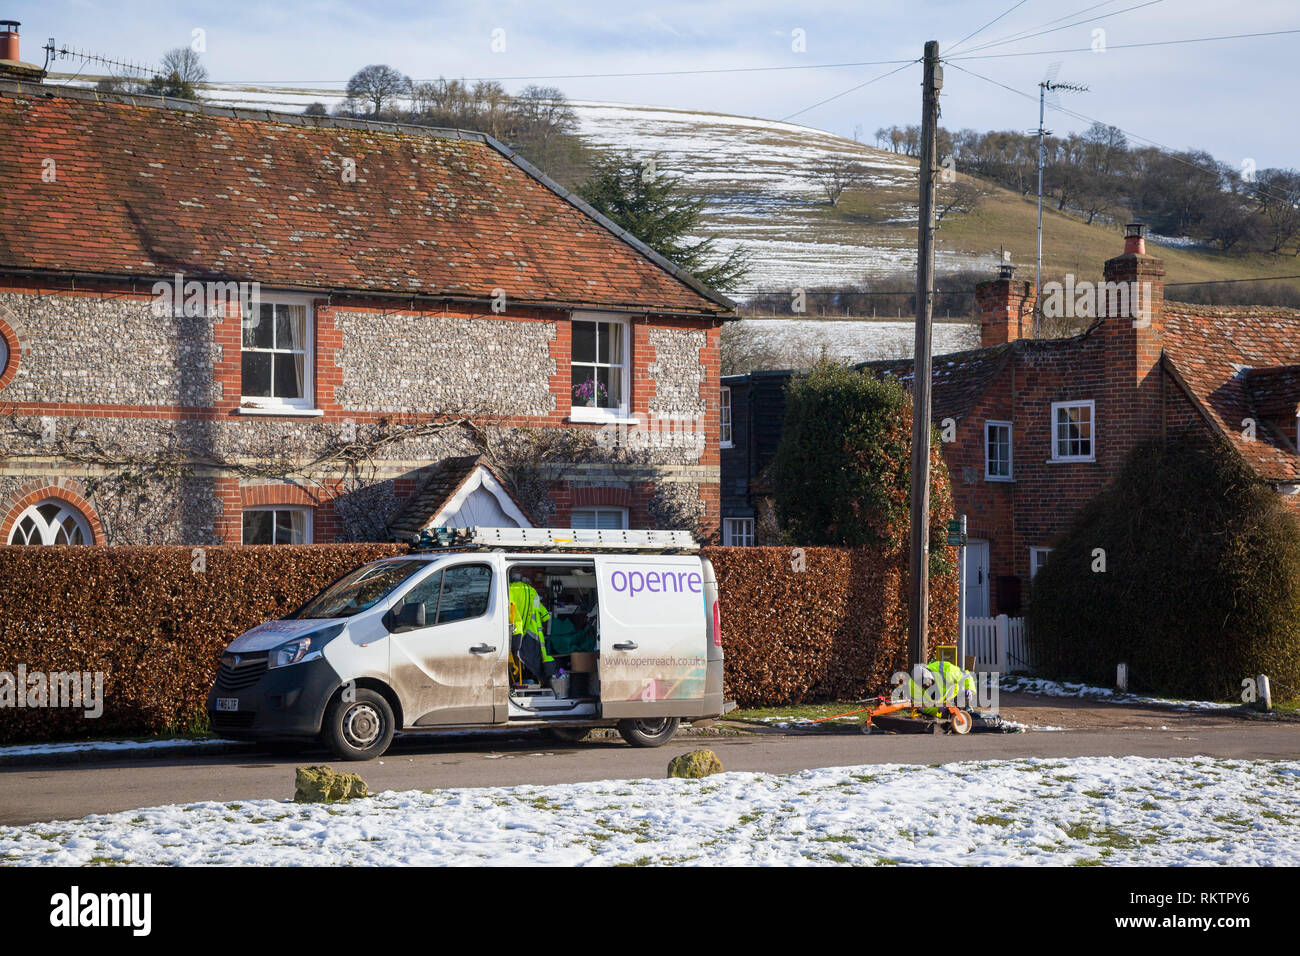 A BT OpenReach engineer repairs a telephone line in the snow covered village of Turville, Buckinghamshire. - Stock Image